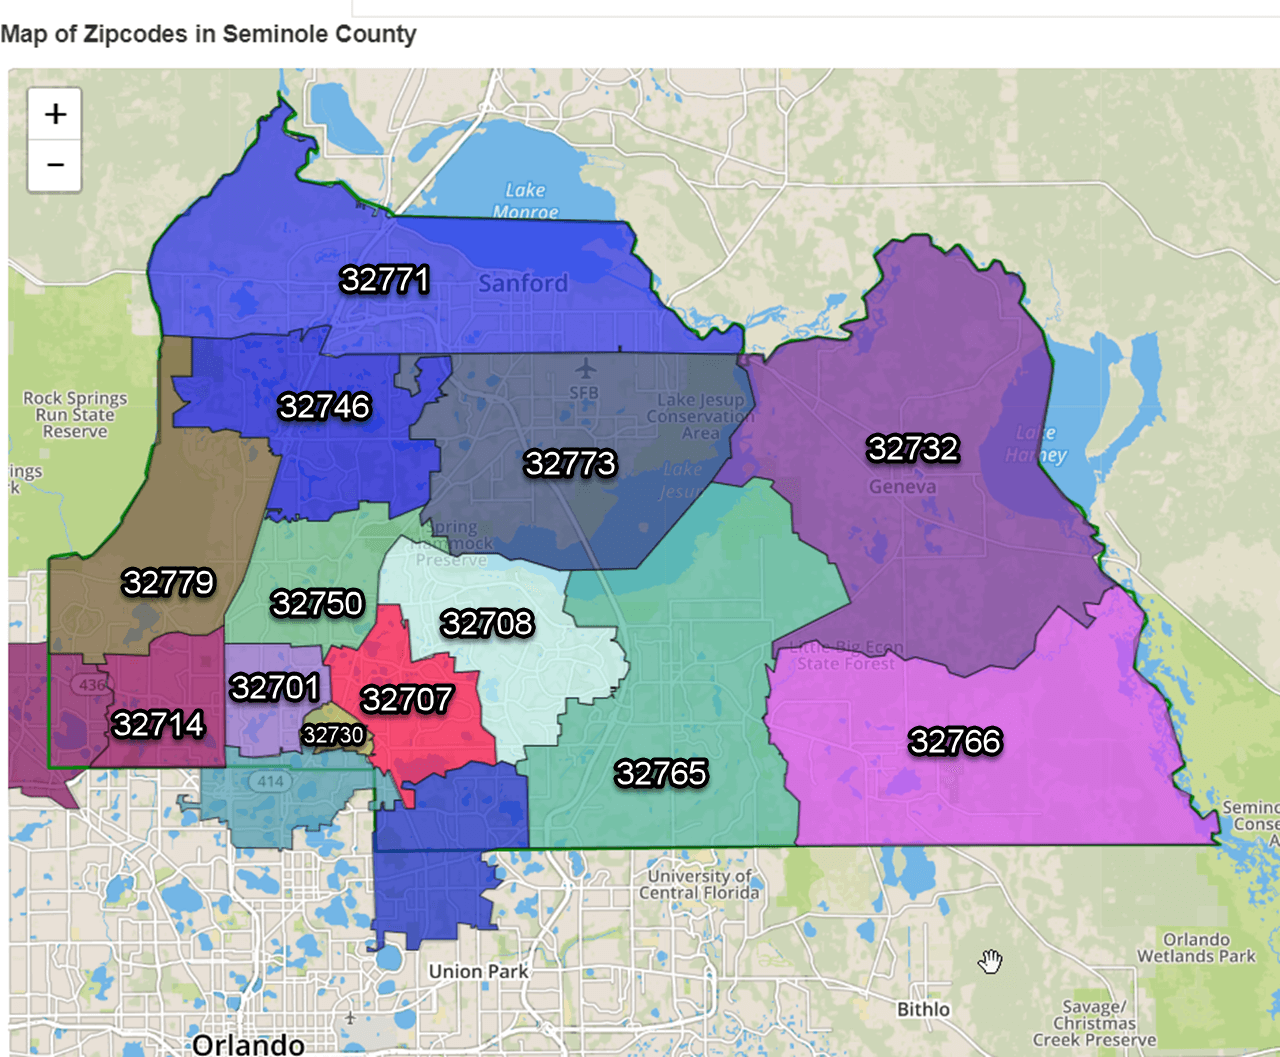 seminole fl zip code map Seminole County Zip Codes 2020 Map